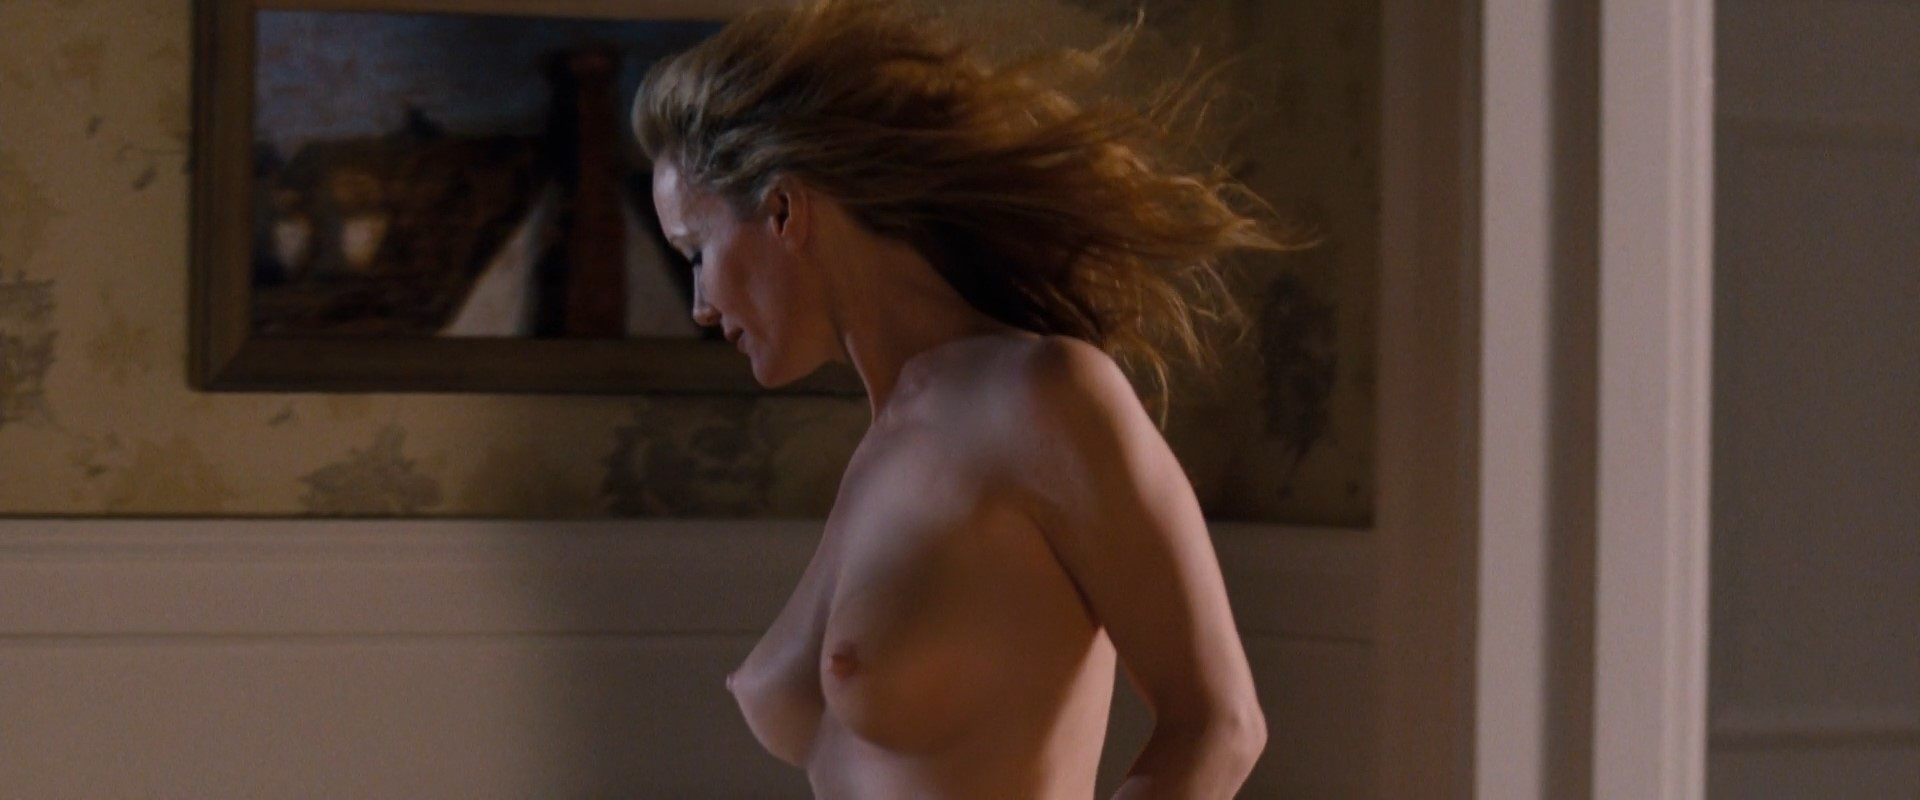 nude images of mariella ahrens